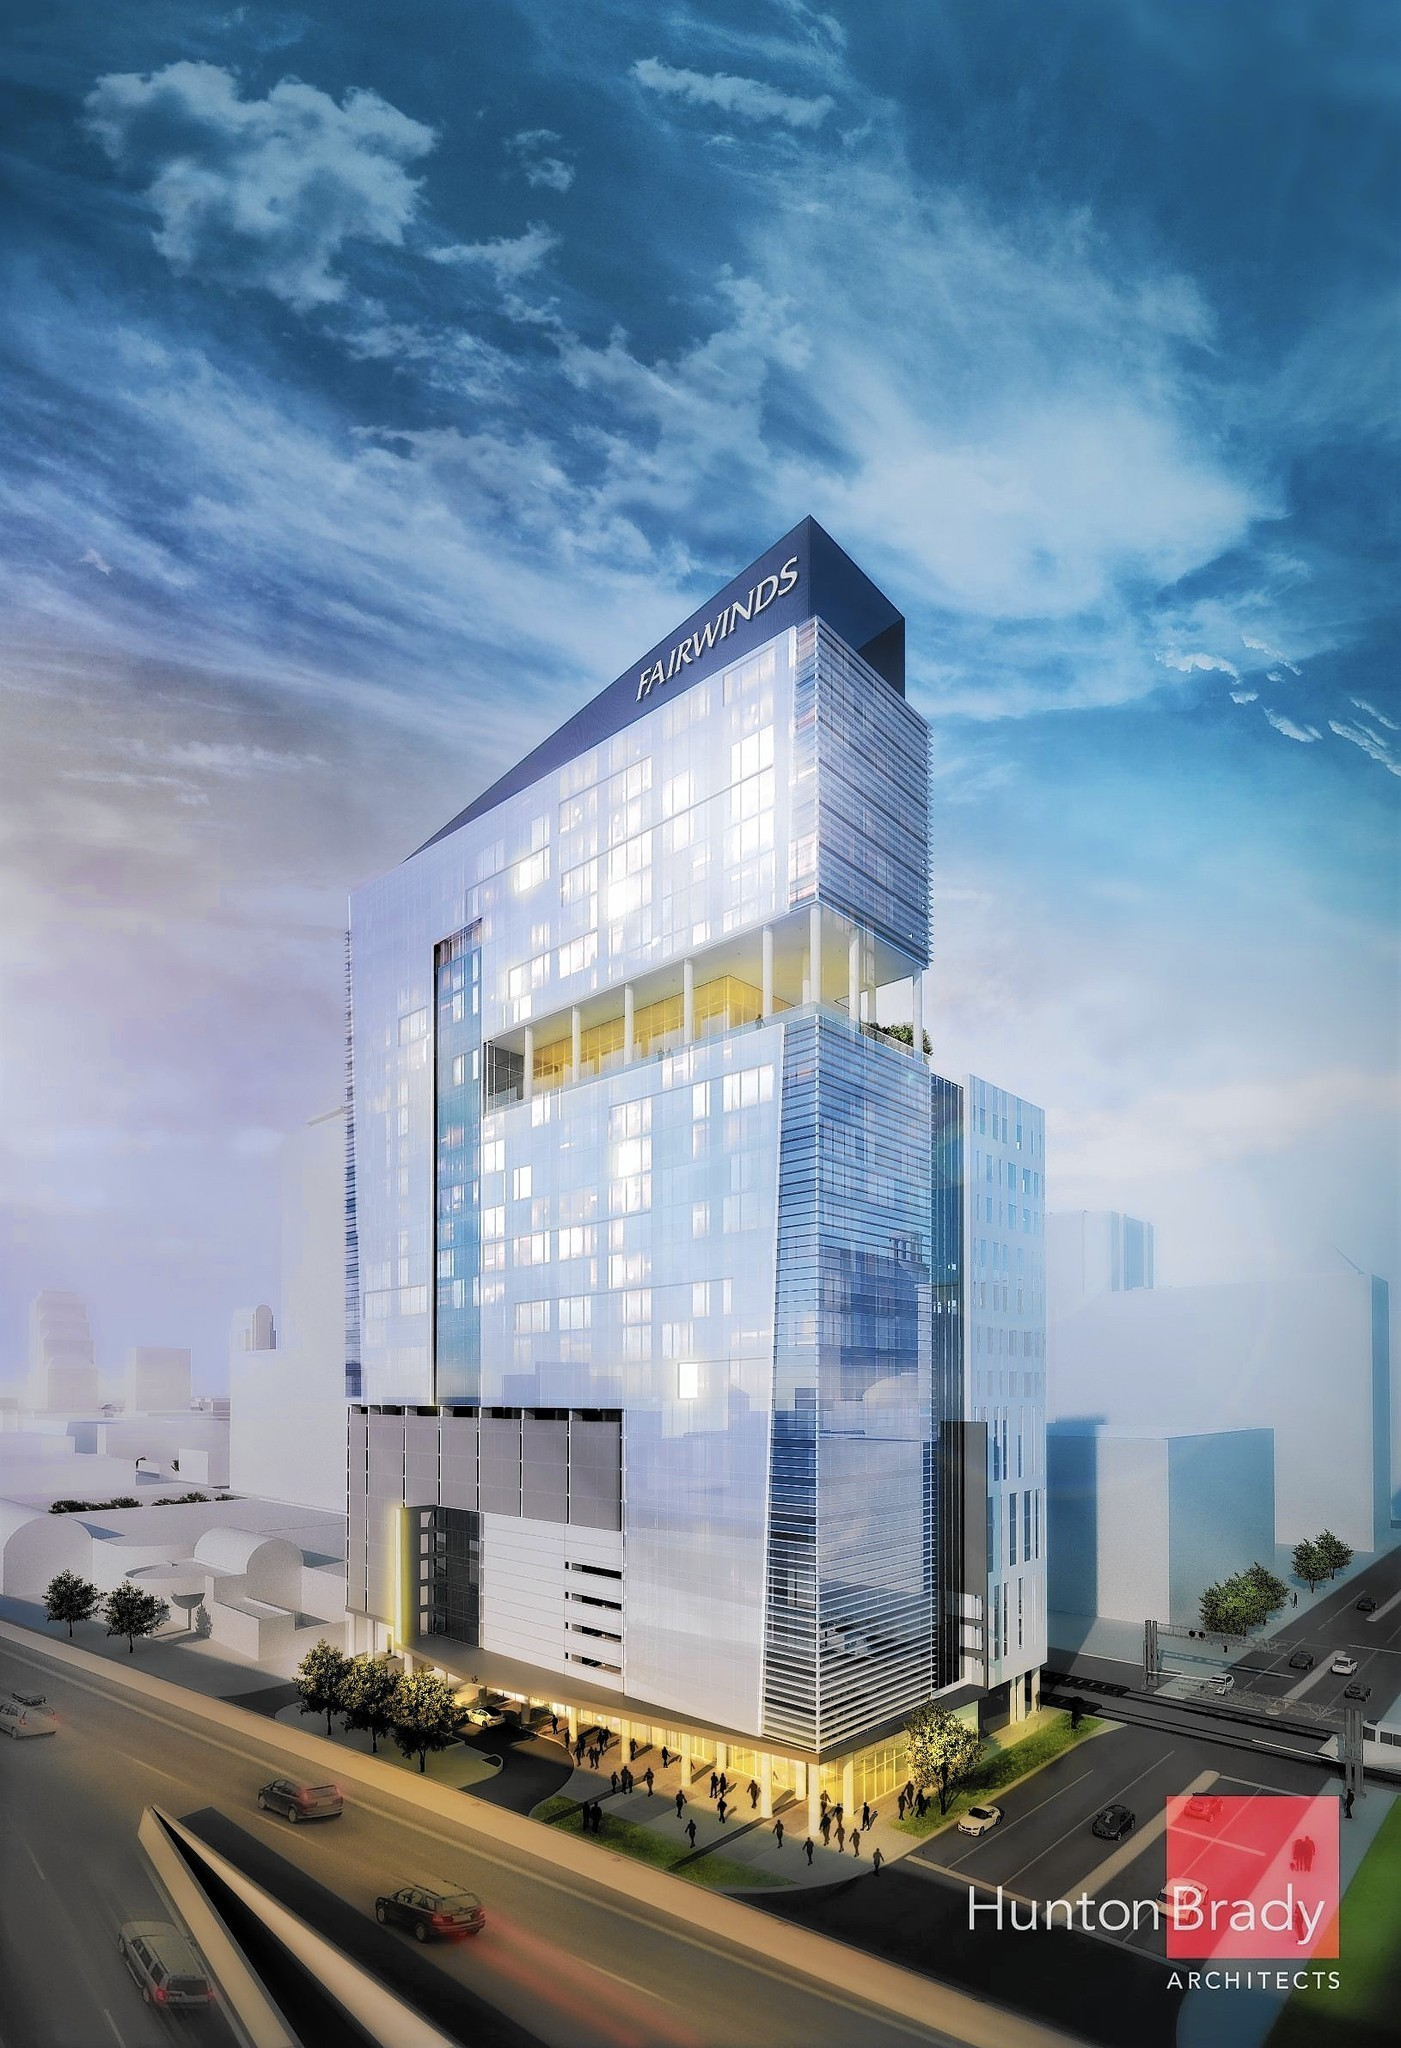 Anchor Leases Drive 3 Office Projects Orlando Sentinel